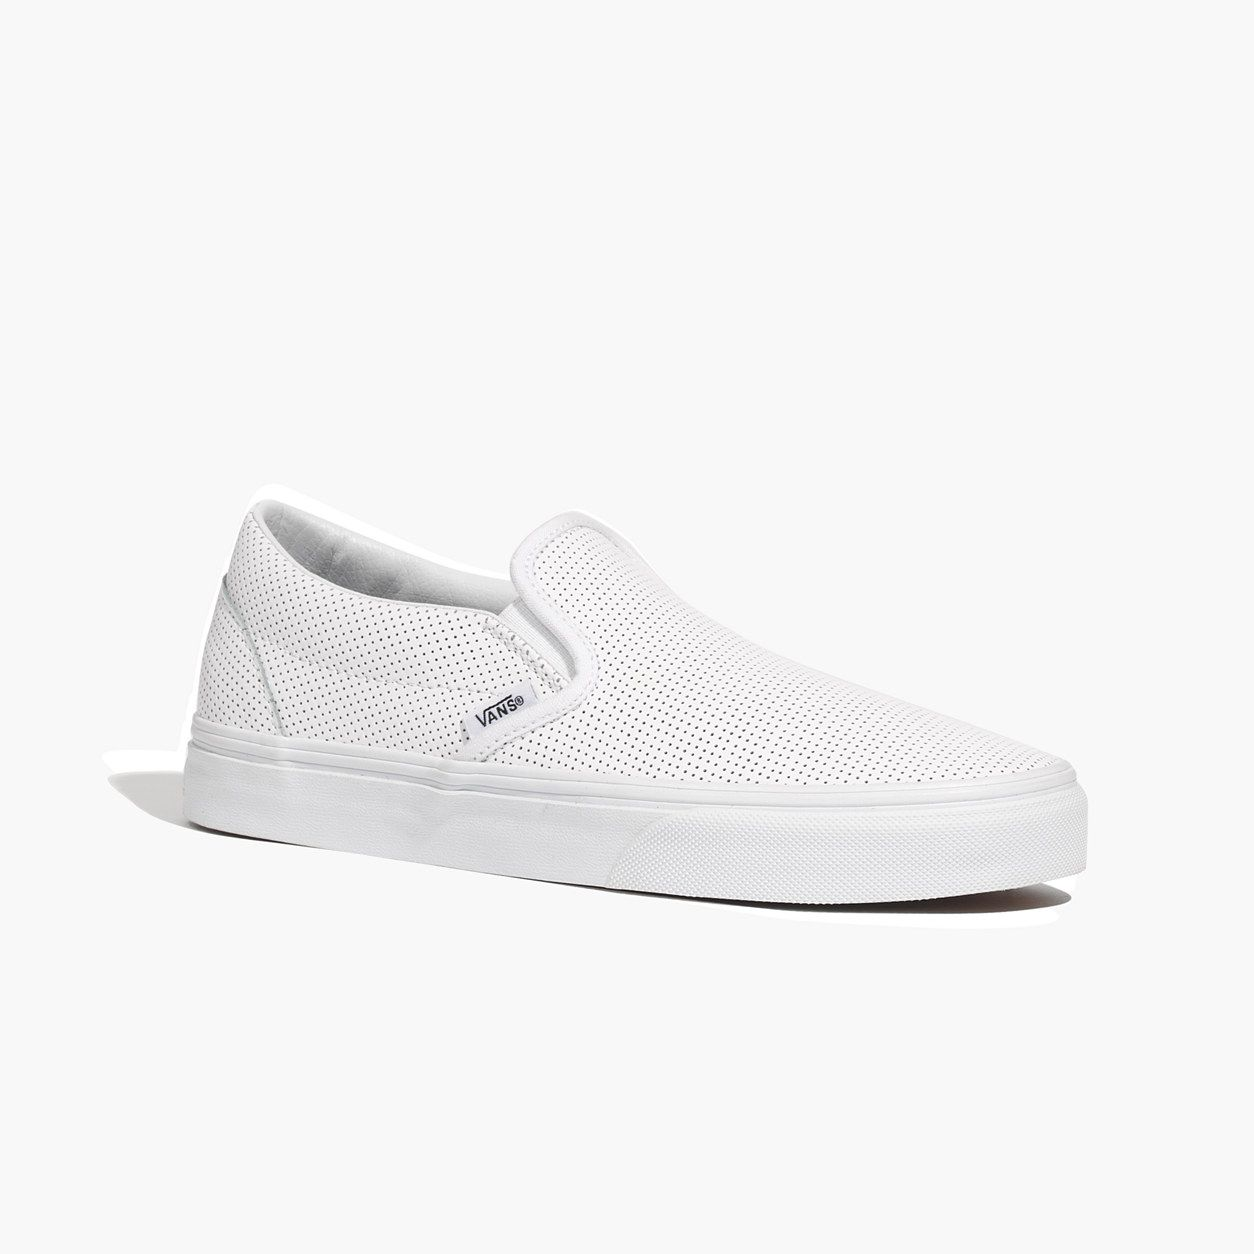 Vans® Classic Slip-Ons in Perforated Leather : SALE | Madewell | La ...